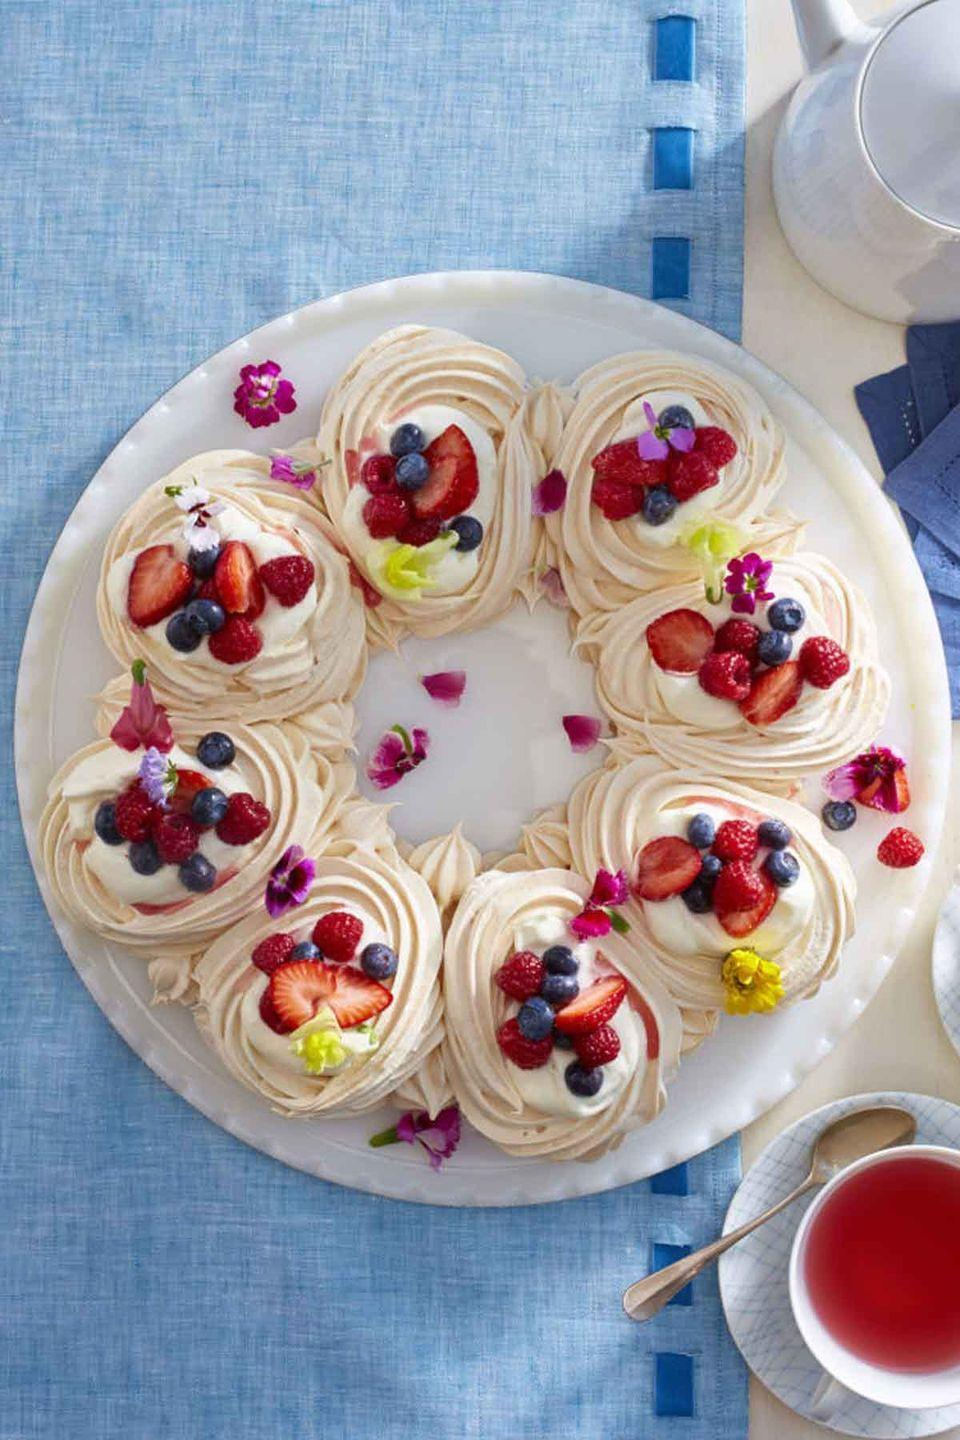 """<p>These lighter-than-air meringues come together to make one spectacular dessert """"wreath.""""</p><p><a href=""""https://www.womansday.com/food-recipes/food-drinks/recipes/a58133/meringue-wreath-recipe/"""" rel=""""nofollow noopener"""" target=""""_blank"""" data-ylk=""""slk:Get the recipe for Meringue Wreath."""" class=""""link rapid-noclick-resp""""><em>Get the recipe for Meringue Wreath.</em></a> </p>"""